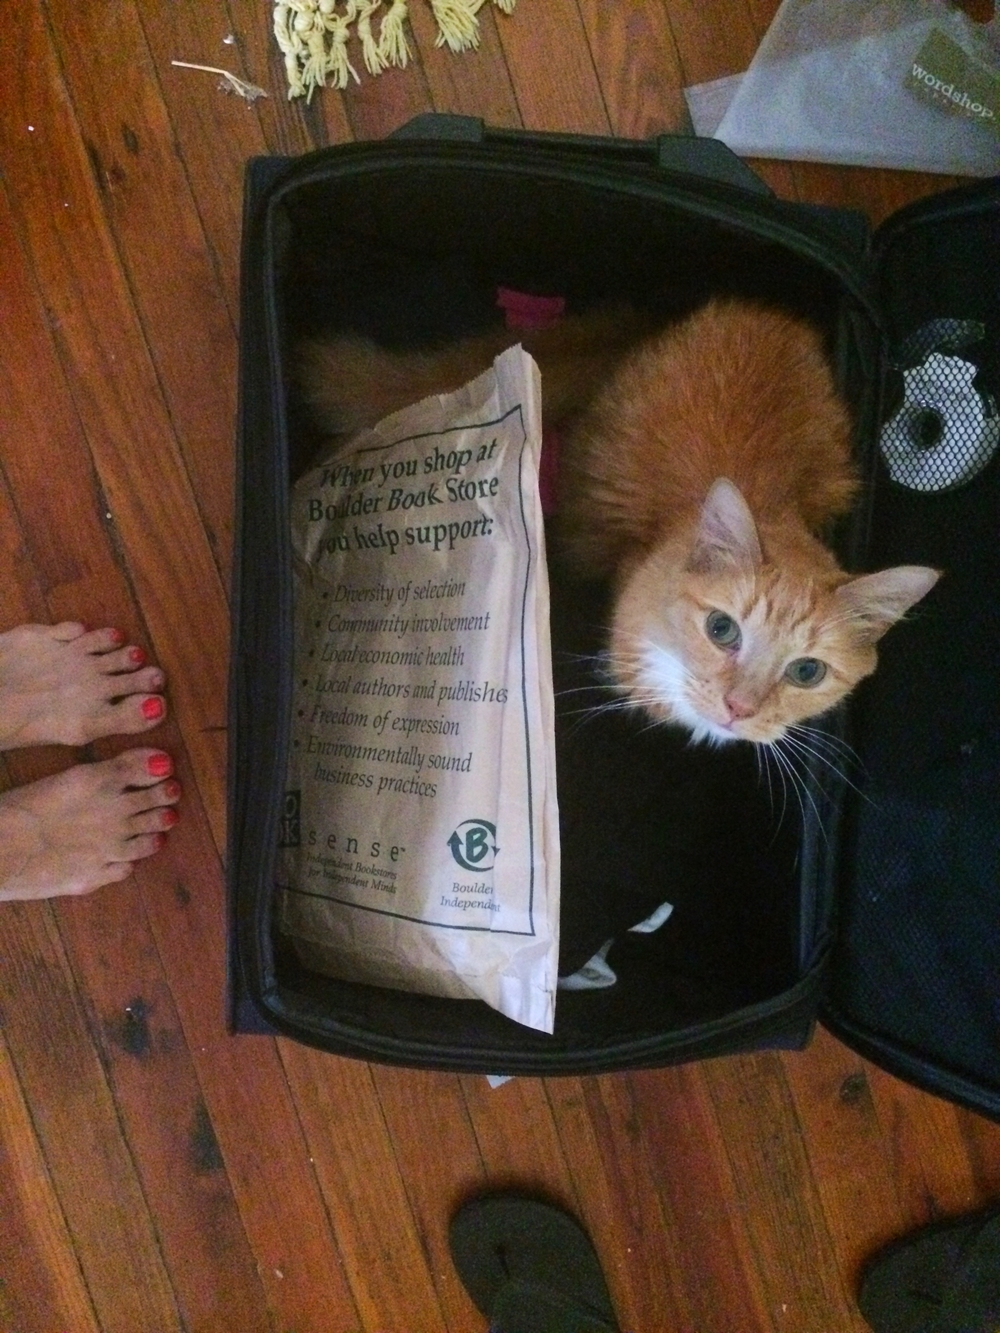 I just realized that is literally a suitcase full of books and a cat, so this photo is basically my life.